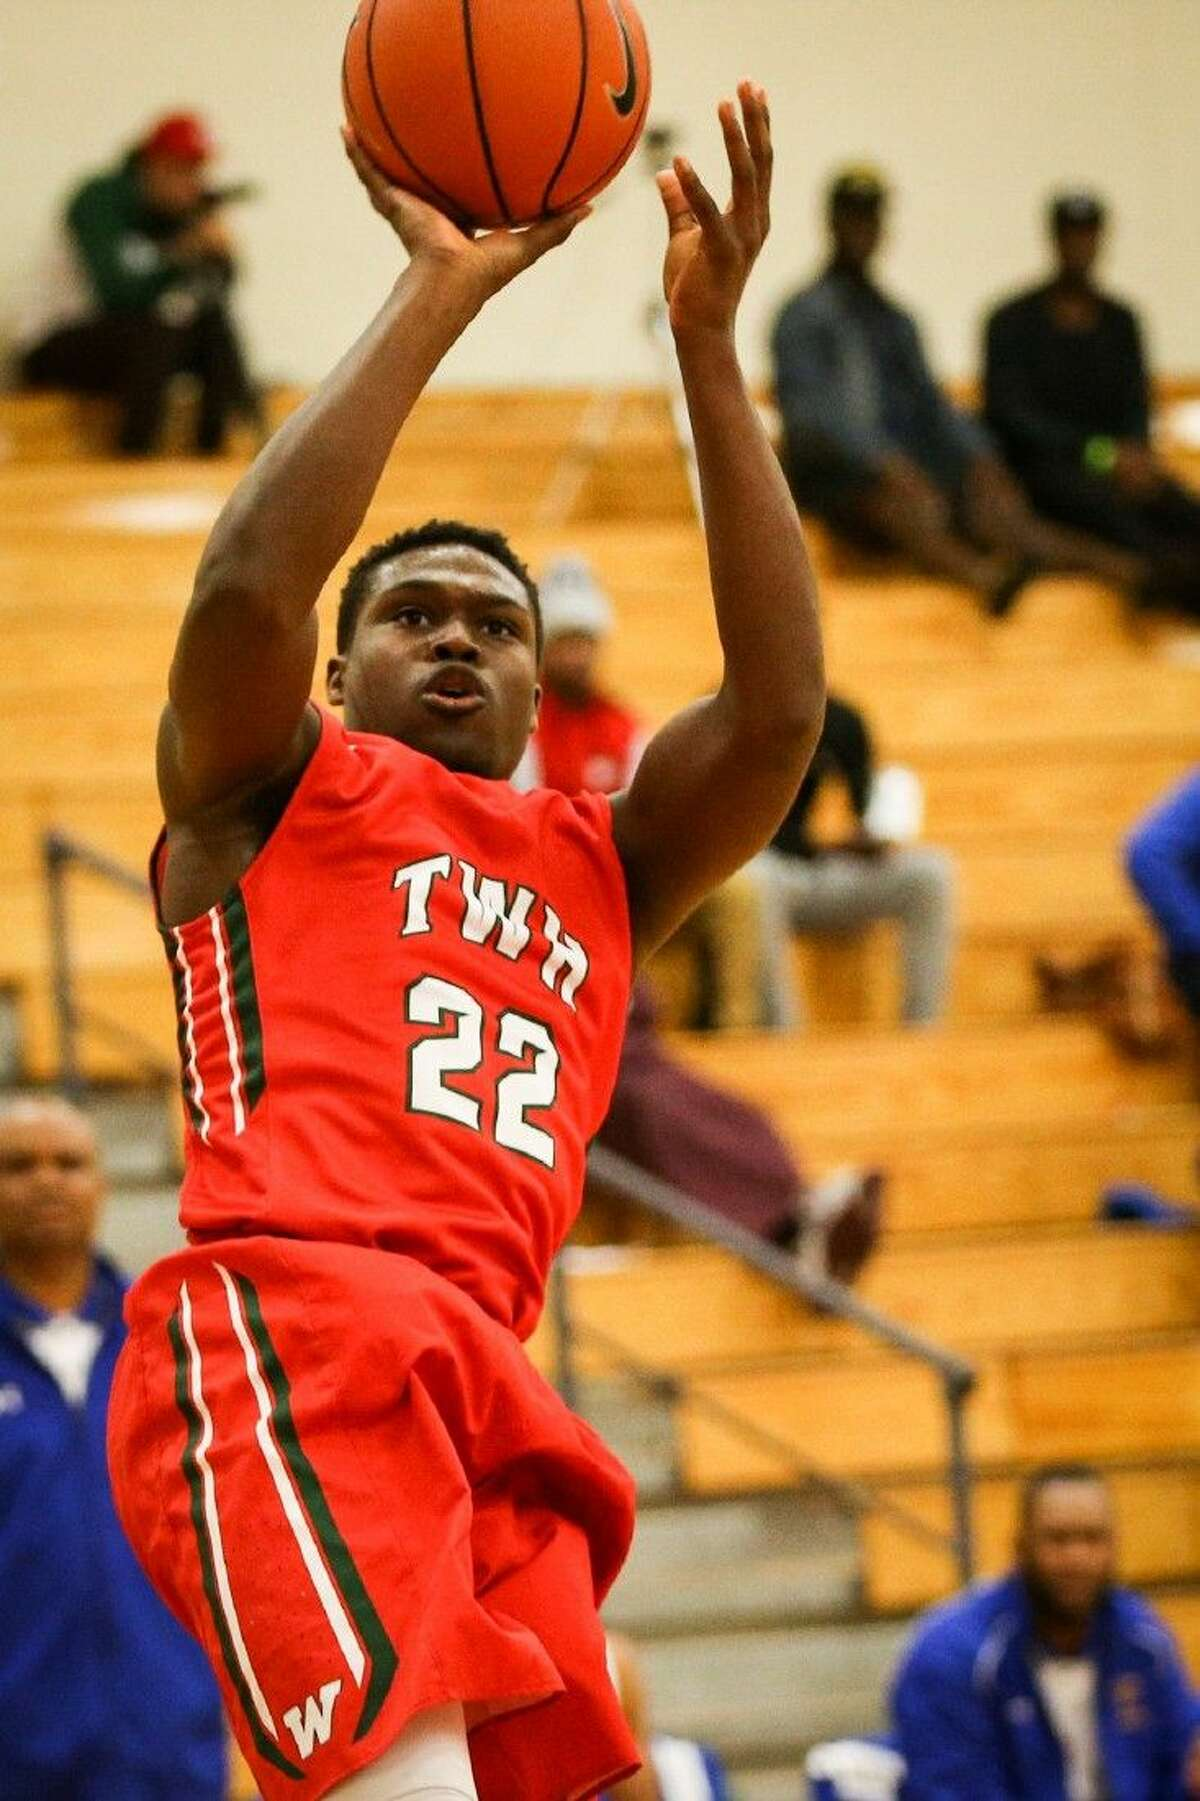 The Woodlands' Romello Wilbert (22) shoots the ball during a high school boys basketball game against Fort Bend Elkins this past Saturday night.